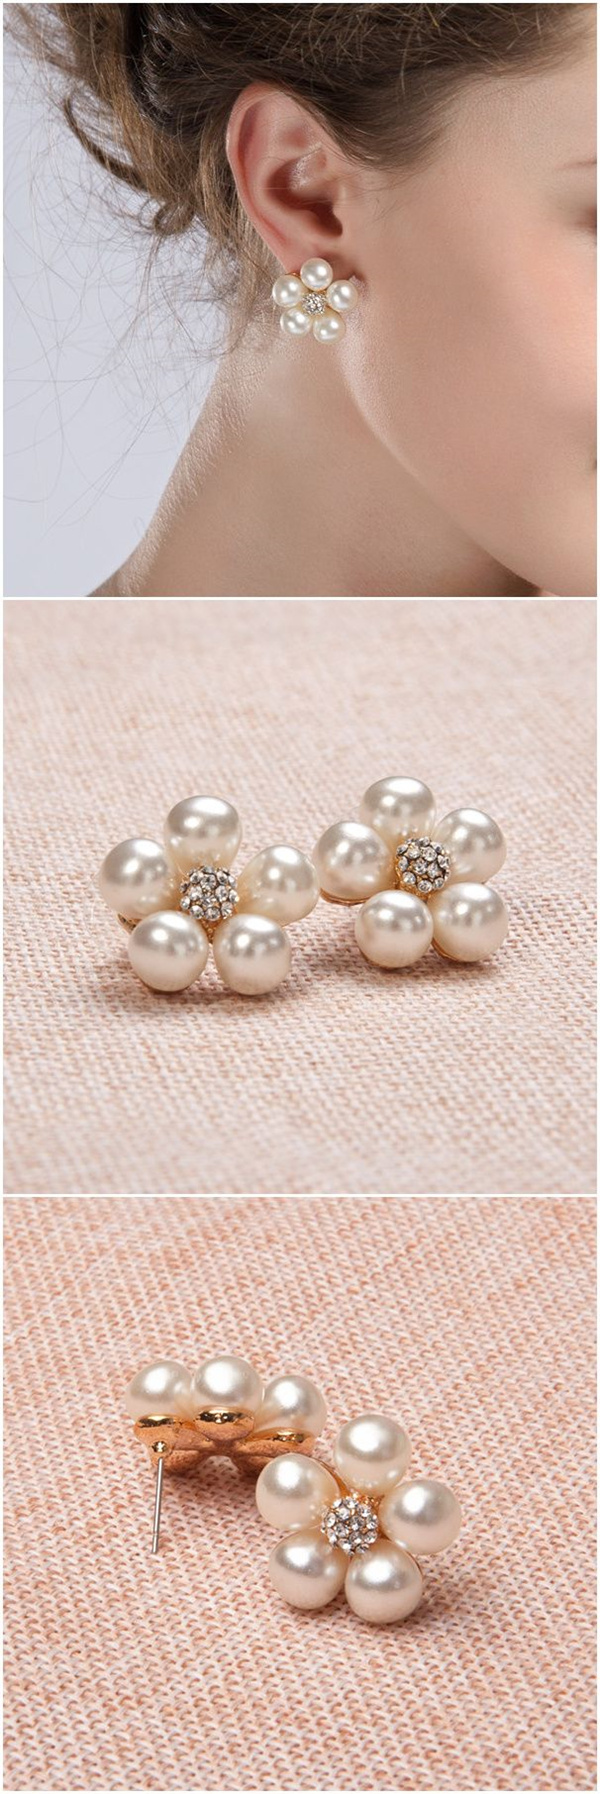 wedding accessories elegant floral rhinestone and pearl bridal earrings EWAER007